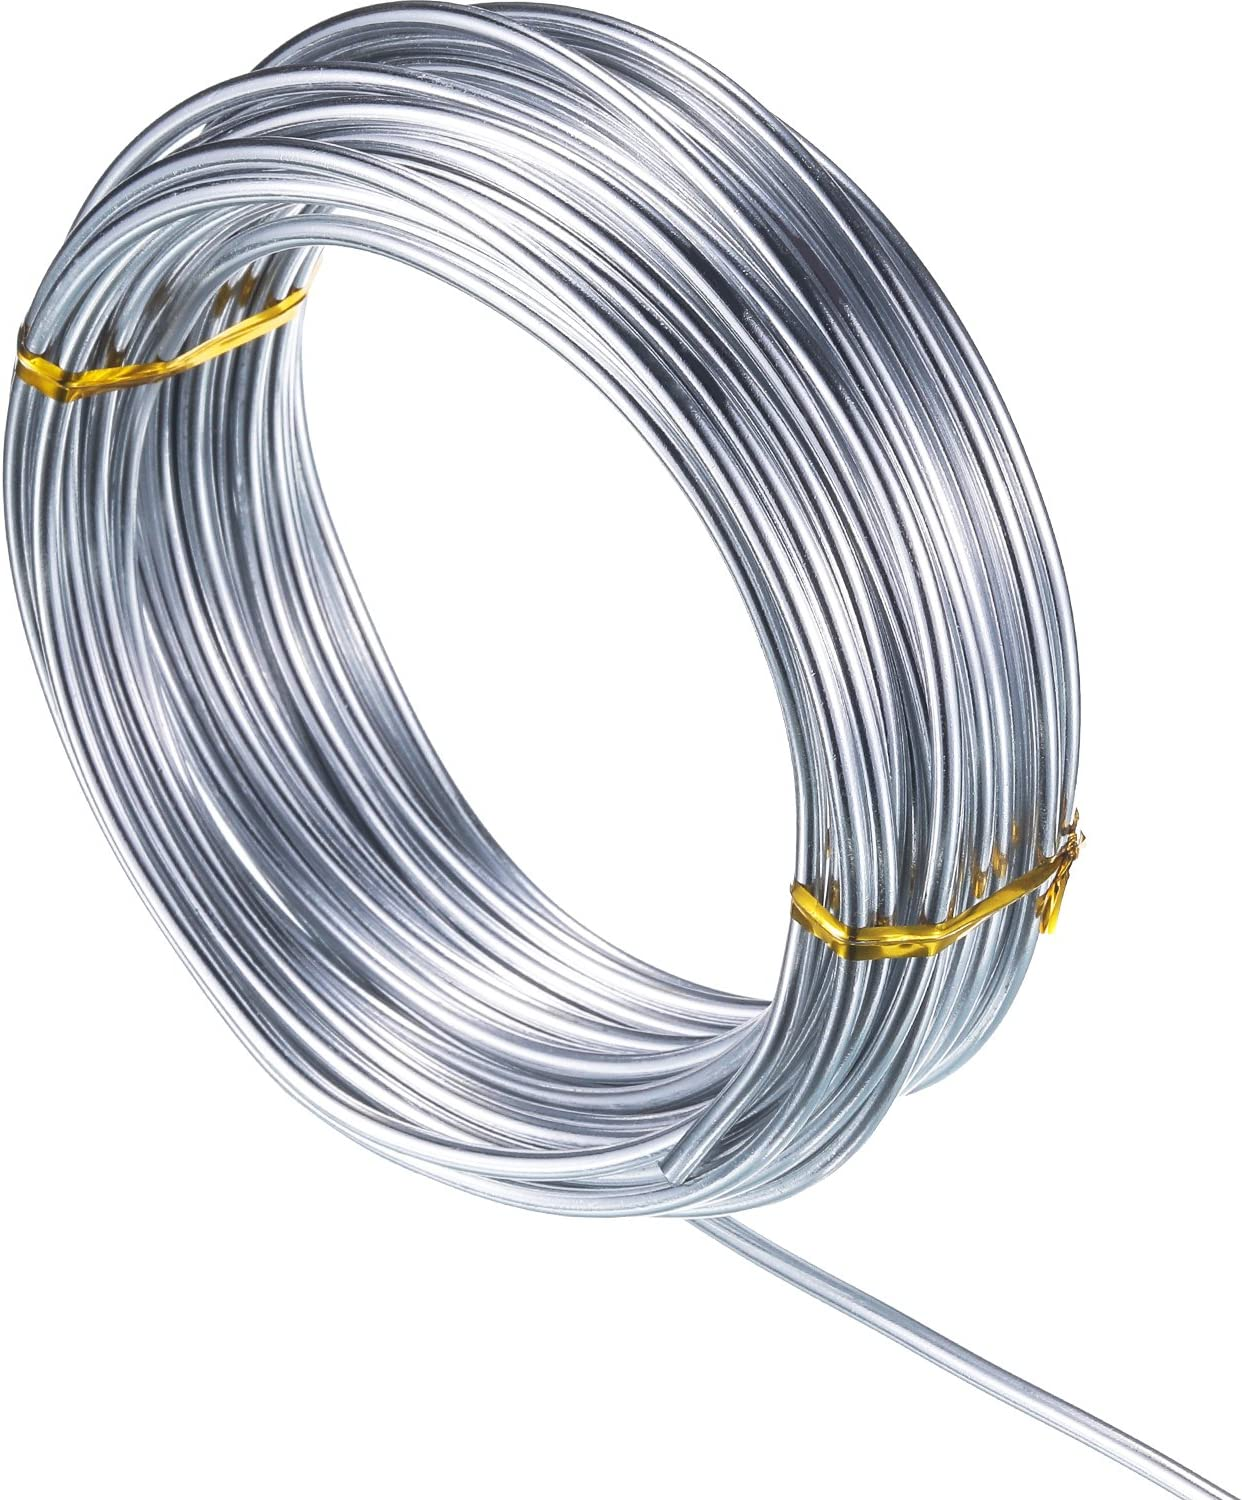 Bendable Craft Wire Art Yellow - WIRE Center •